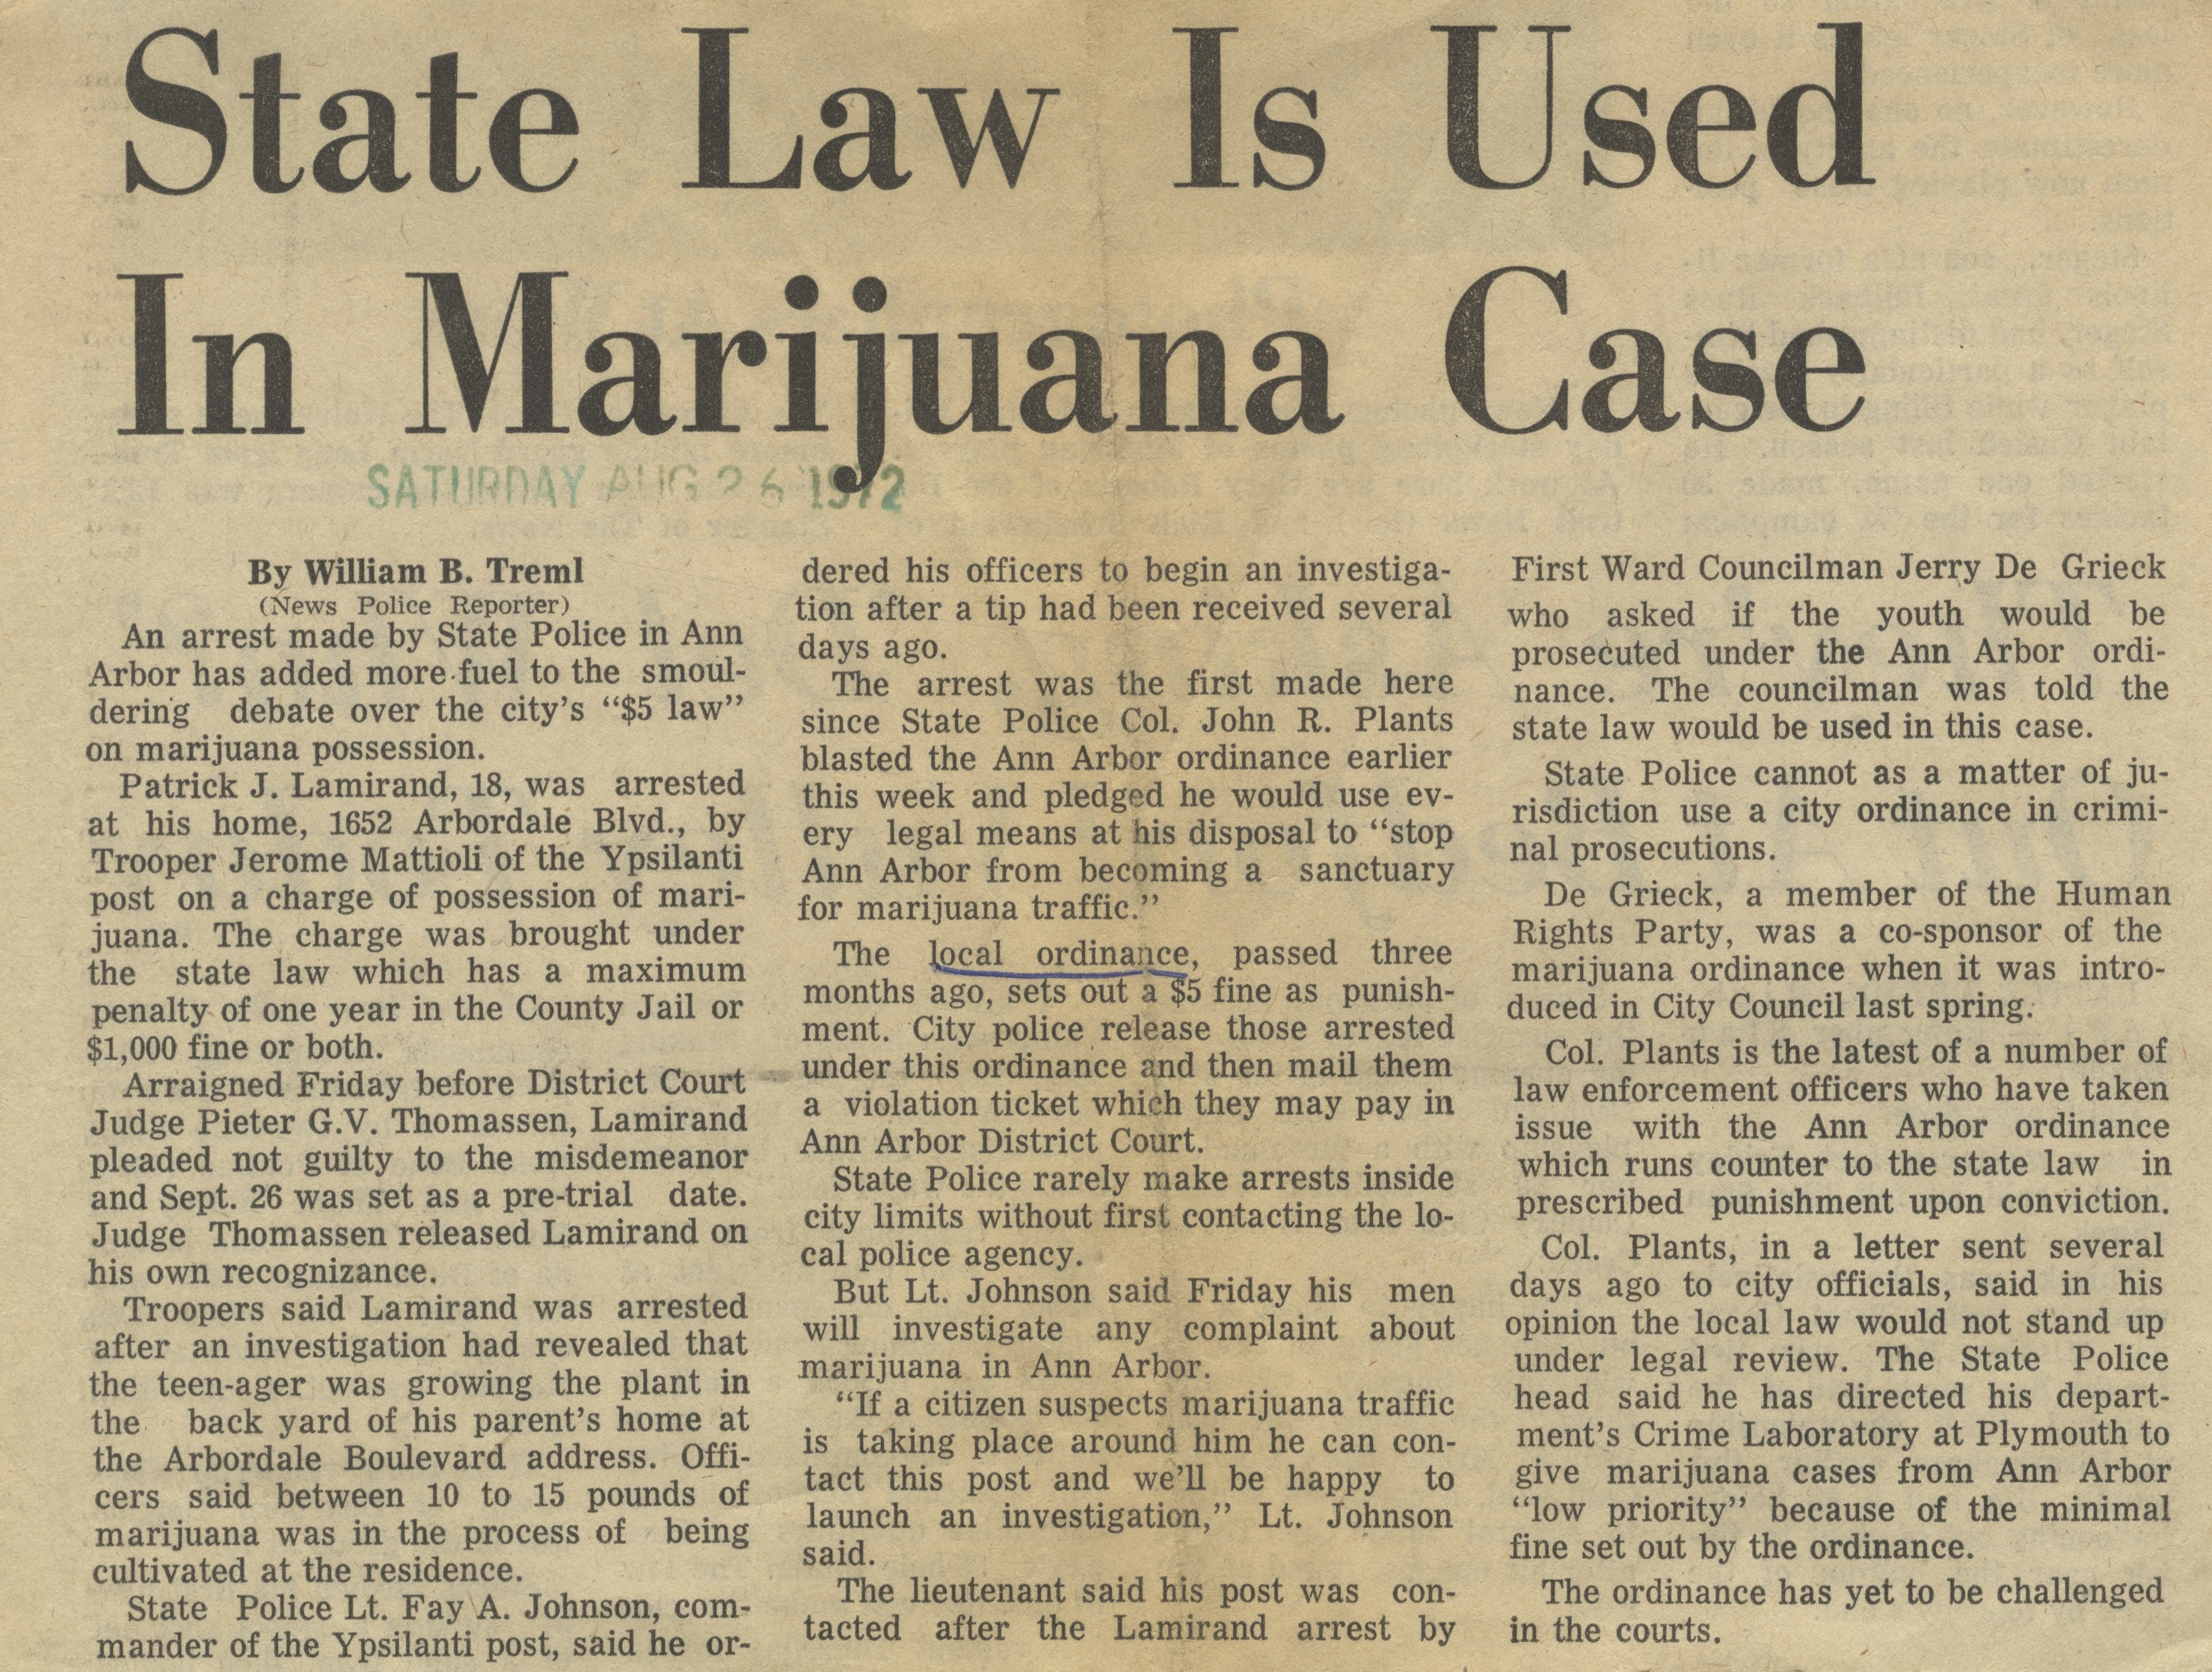 State Law Is Used In Marijuana Case image